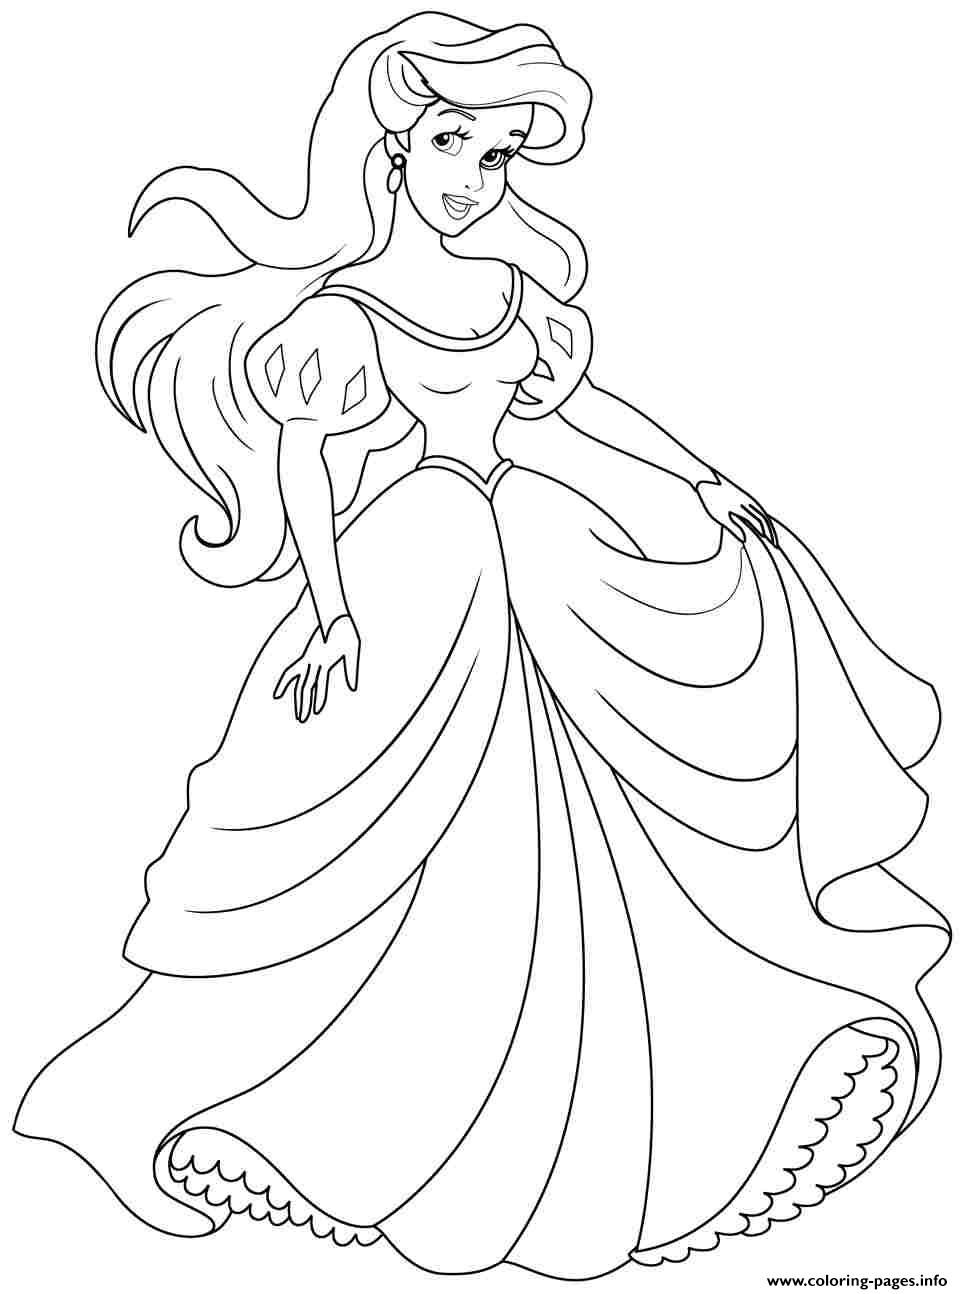 print princess ariel human coloring pages princess coloring